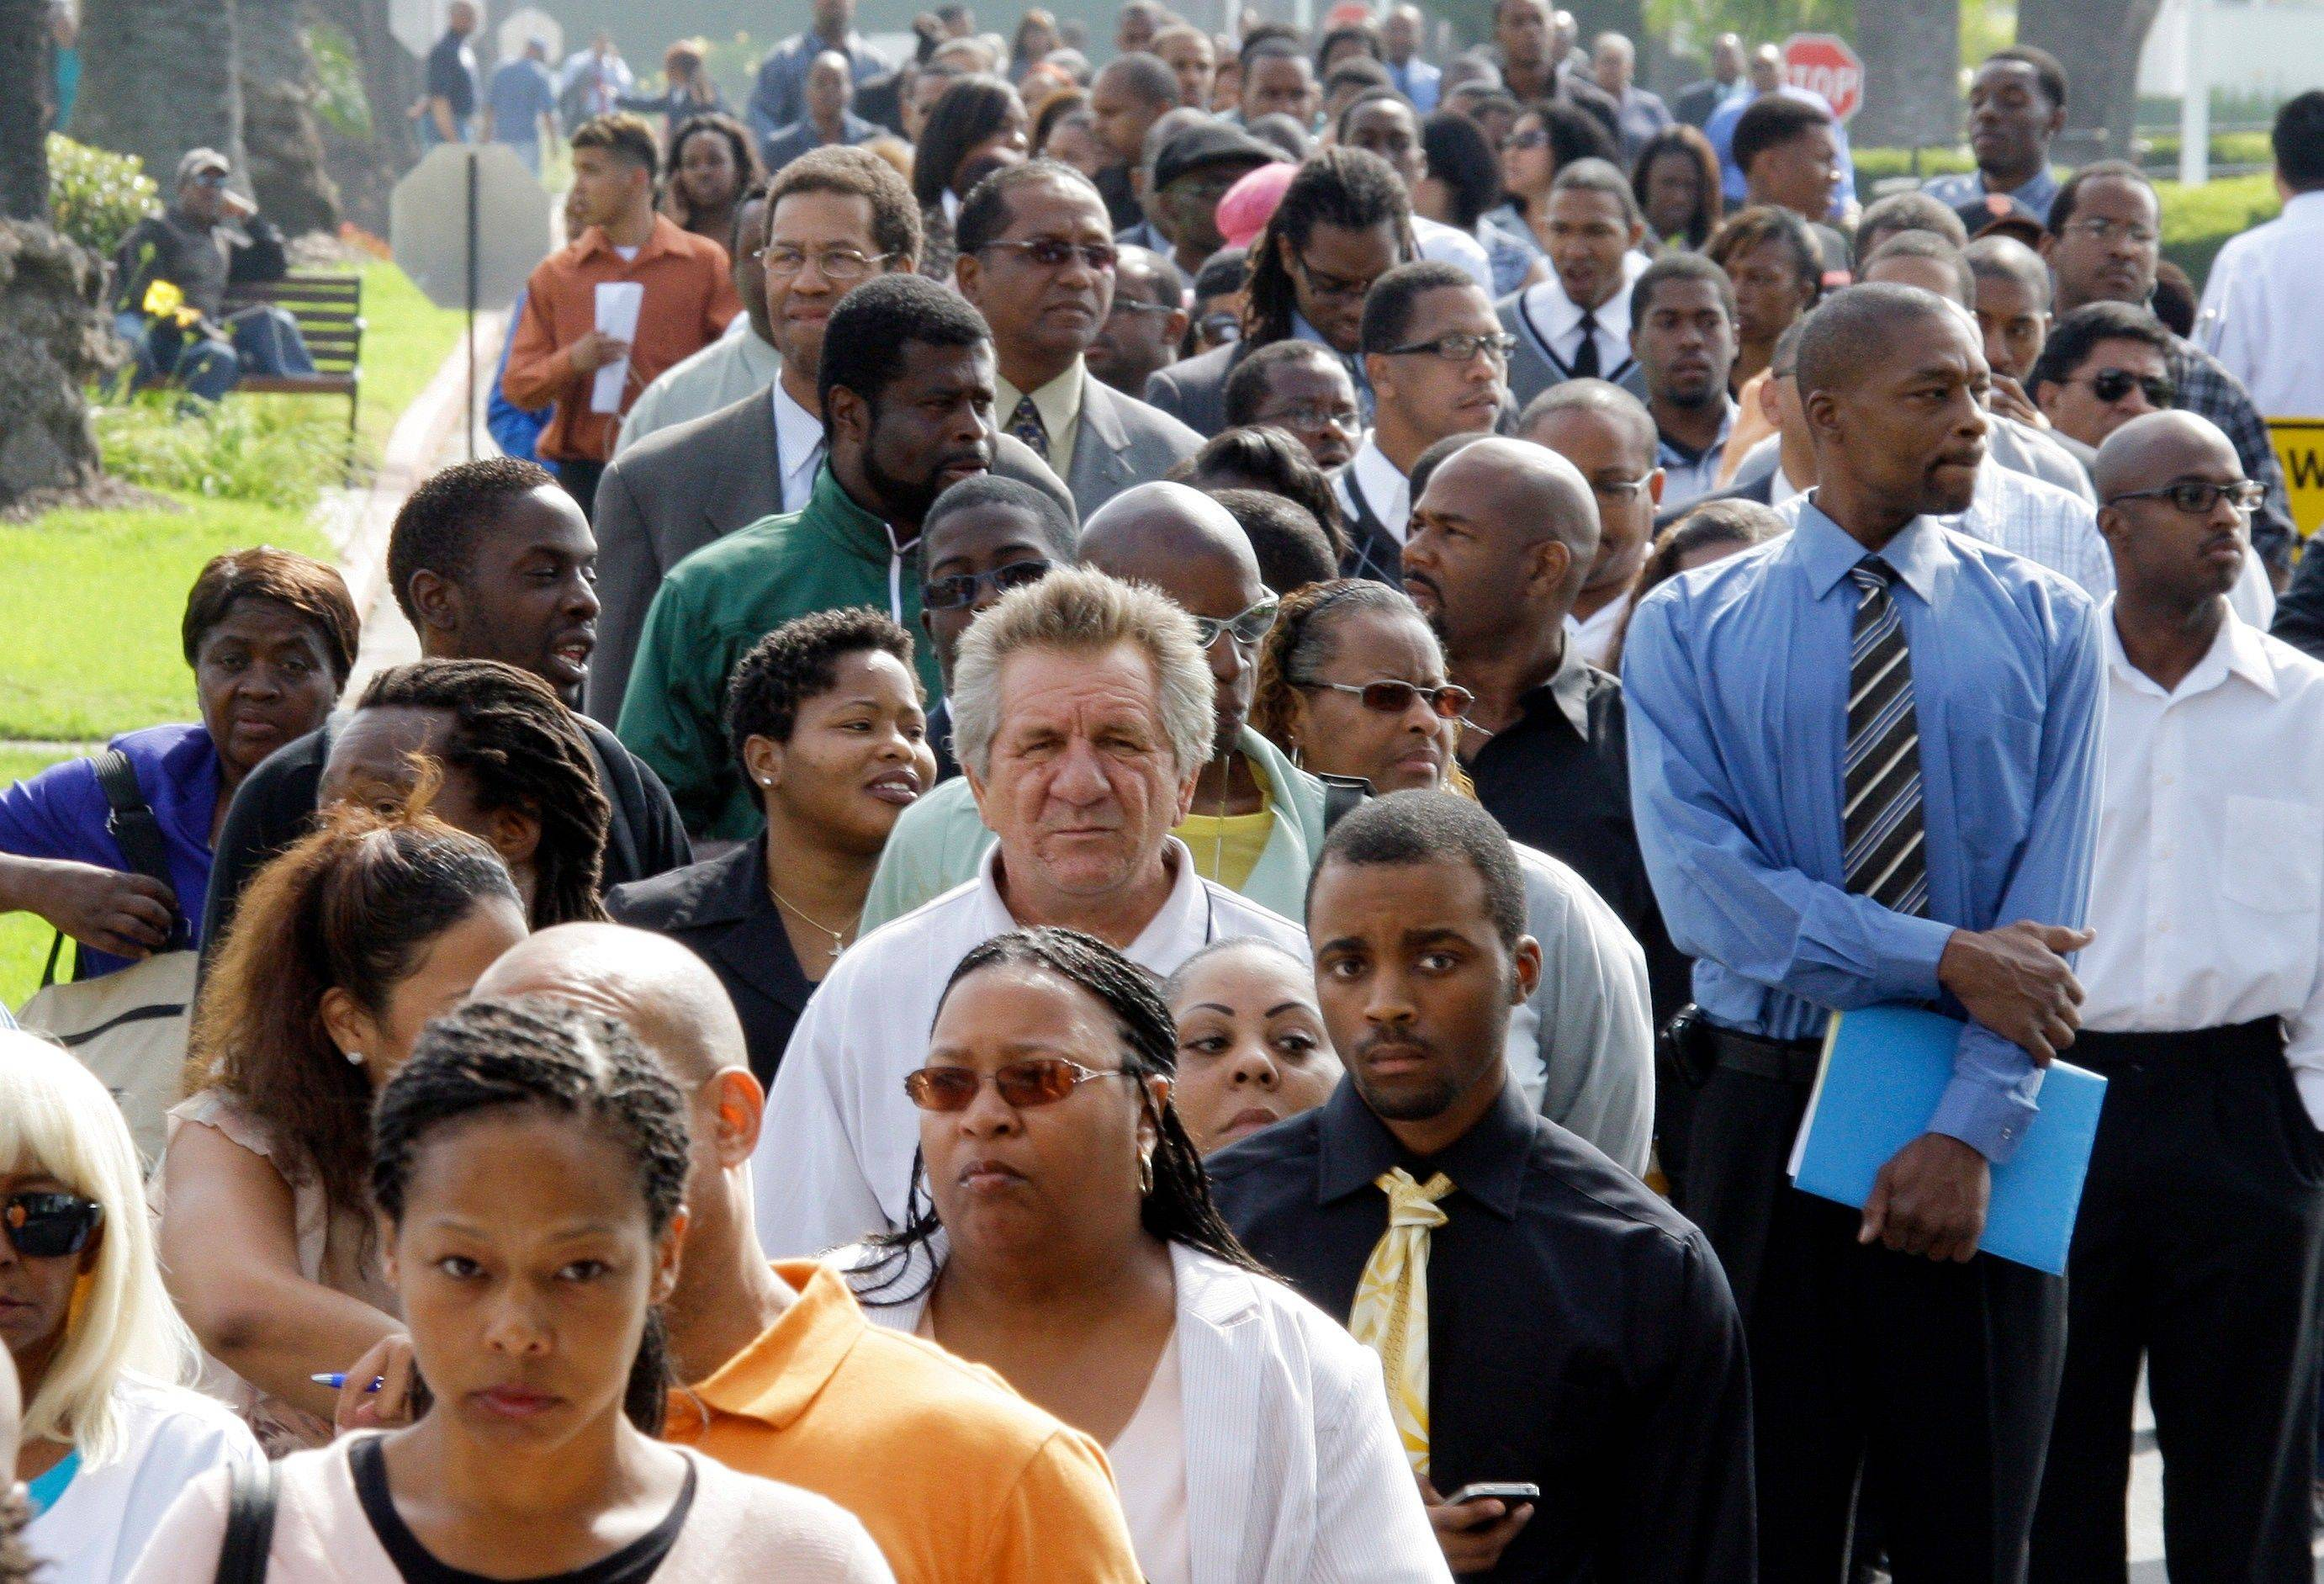 On Aug. 31, crowds of job-seekers wait to enter a job fair at Crenshaw Christian Center in South Los Angeles. Most economists expect growth of between 1.5 percent and 2 percent in the final two quarters. Though an improvement, it wouldn�t be enough to lower the unemployment rate.